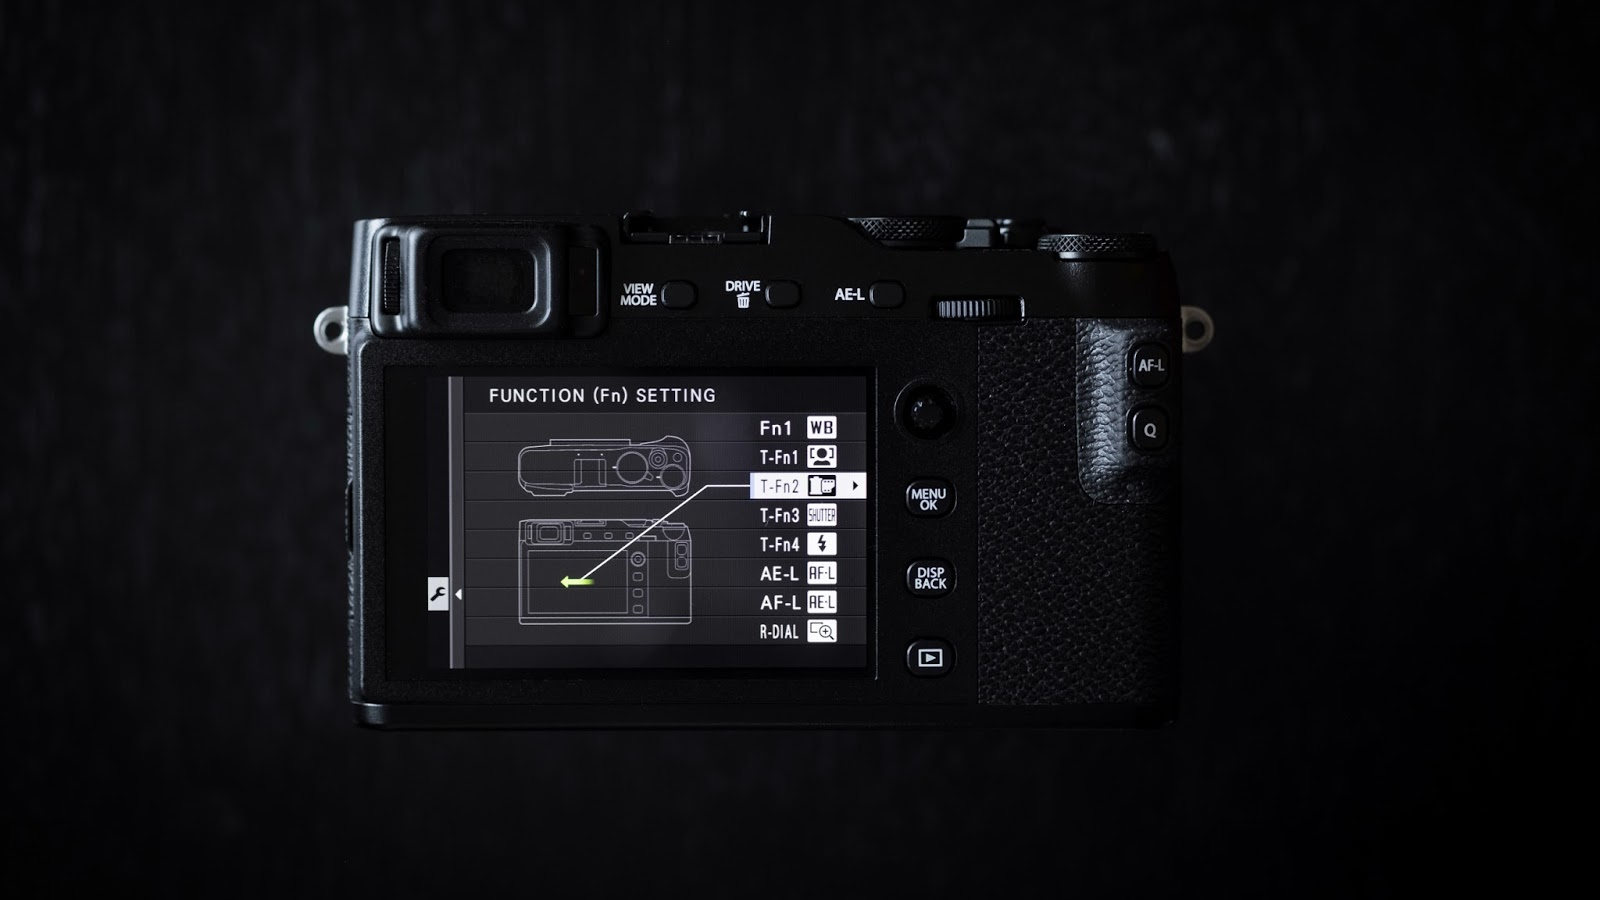 First Impressions Fujifilm X E3 Kit Xf 18 55mm Silver 35mm F2 What Are The Biggest Pros And Cons For Compared To T20 Has Dual Navigation Controls Joystick Touch Screen